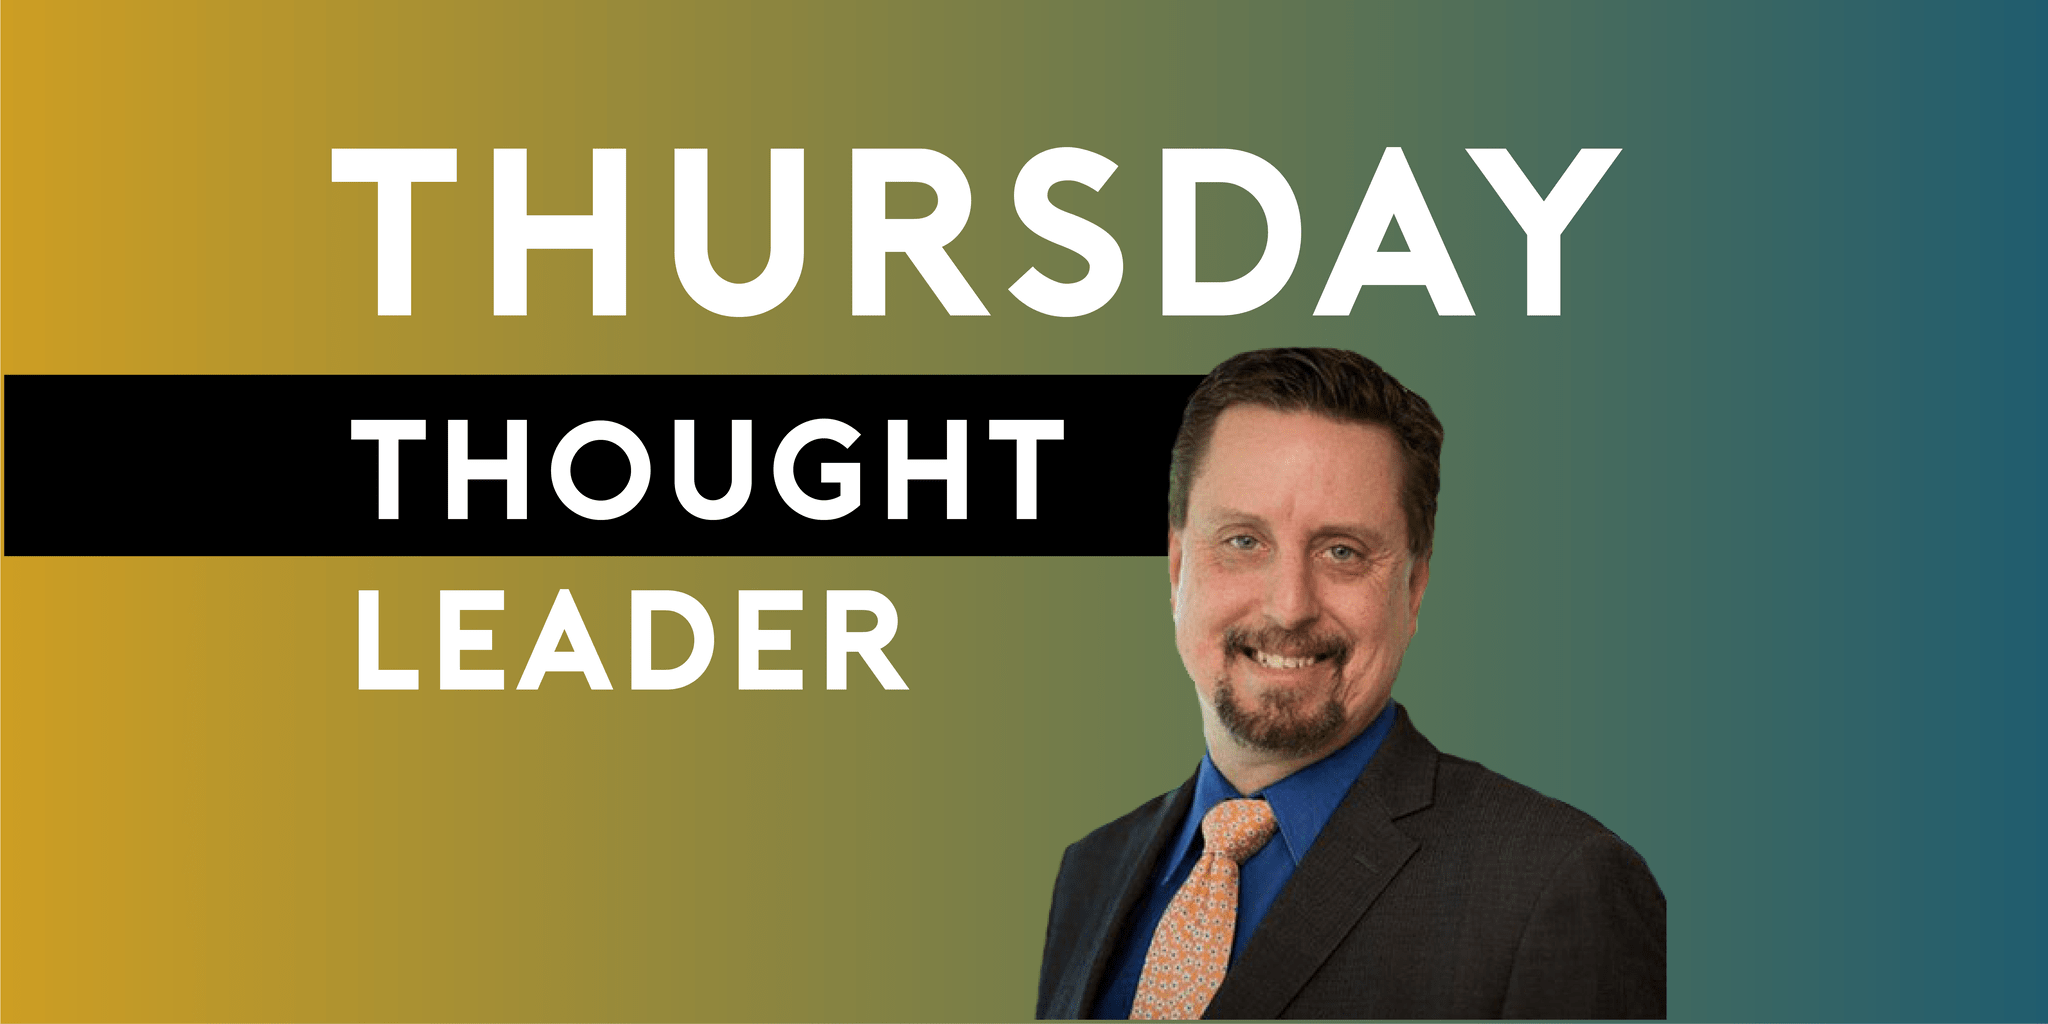 David J. Frankenberger of Ericksen Arbuthnot is LegalNet Inc's Thursday Thought Leader